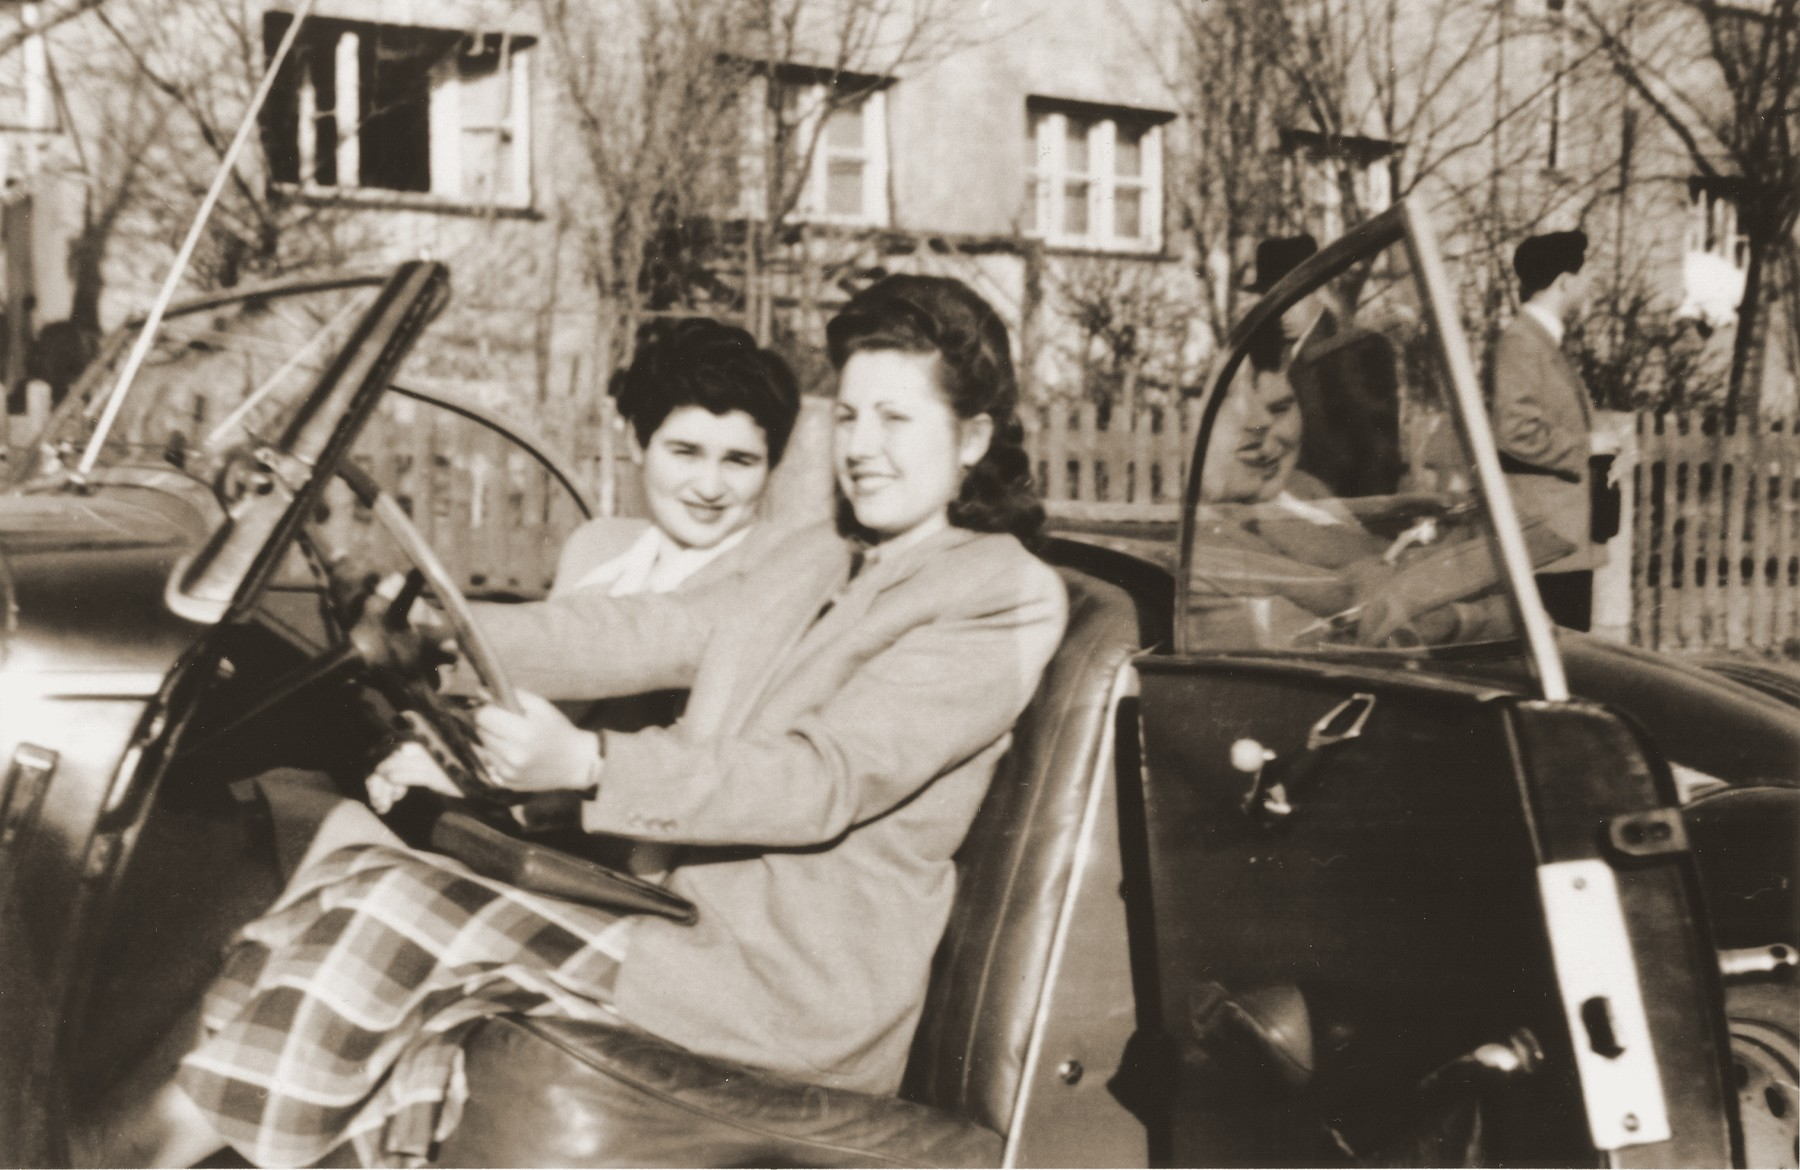 Two Jewish DP women sit in an automobile at the Fuerth displaced persons camp.  Pictured are Esther (Rosenberg) Blacharowicz (right) and Eugenia (Hochberg) Lanceter (left).